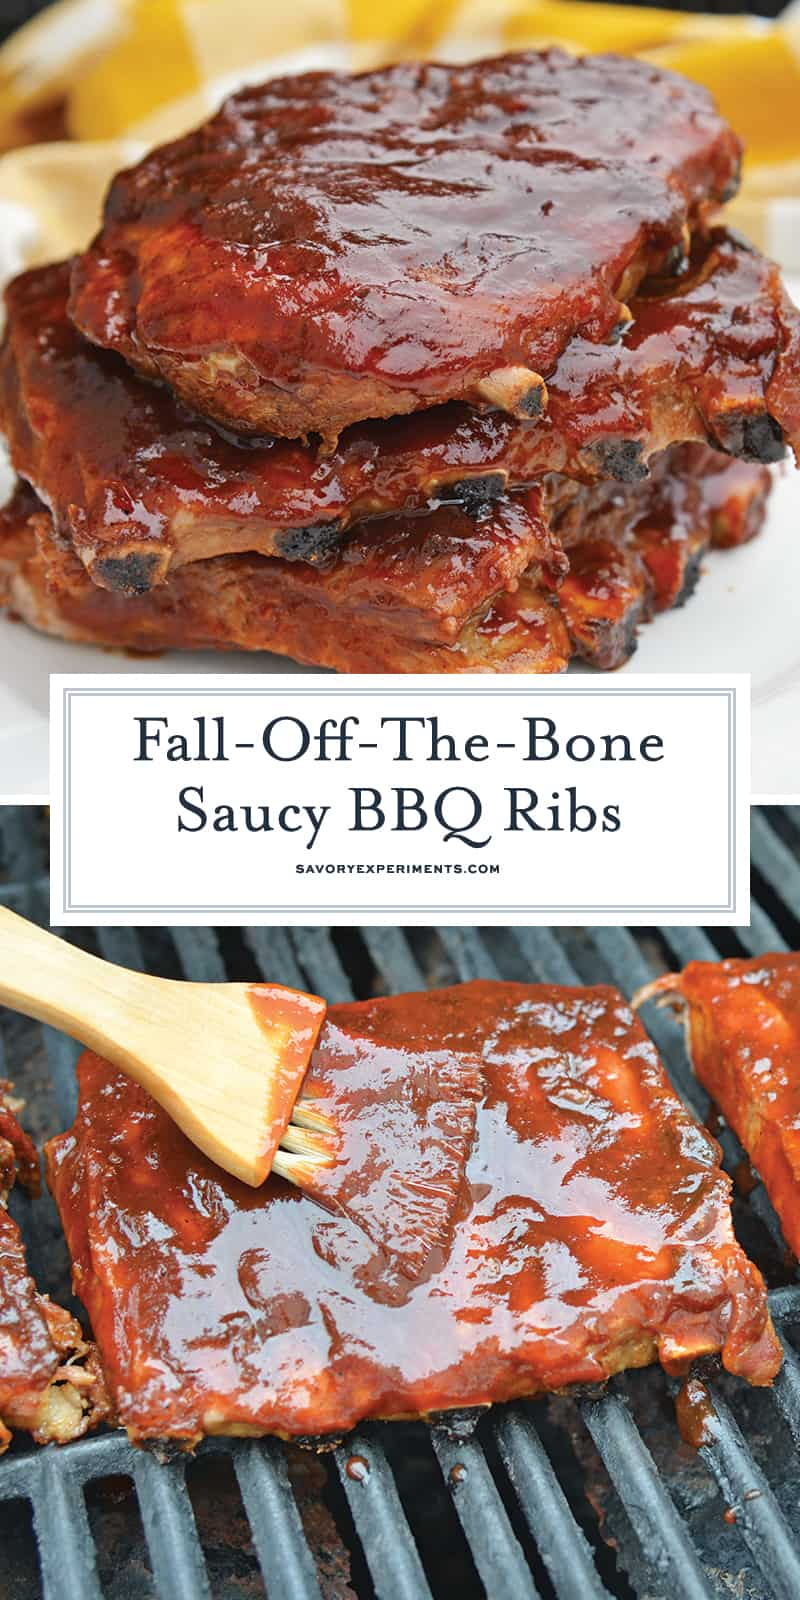 how to cook bbq ribs on the grill